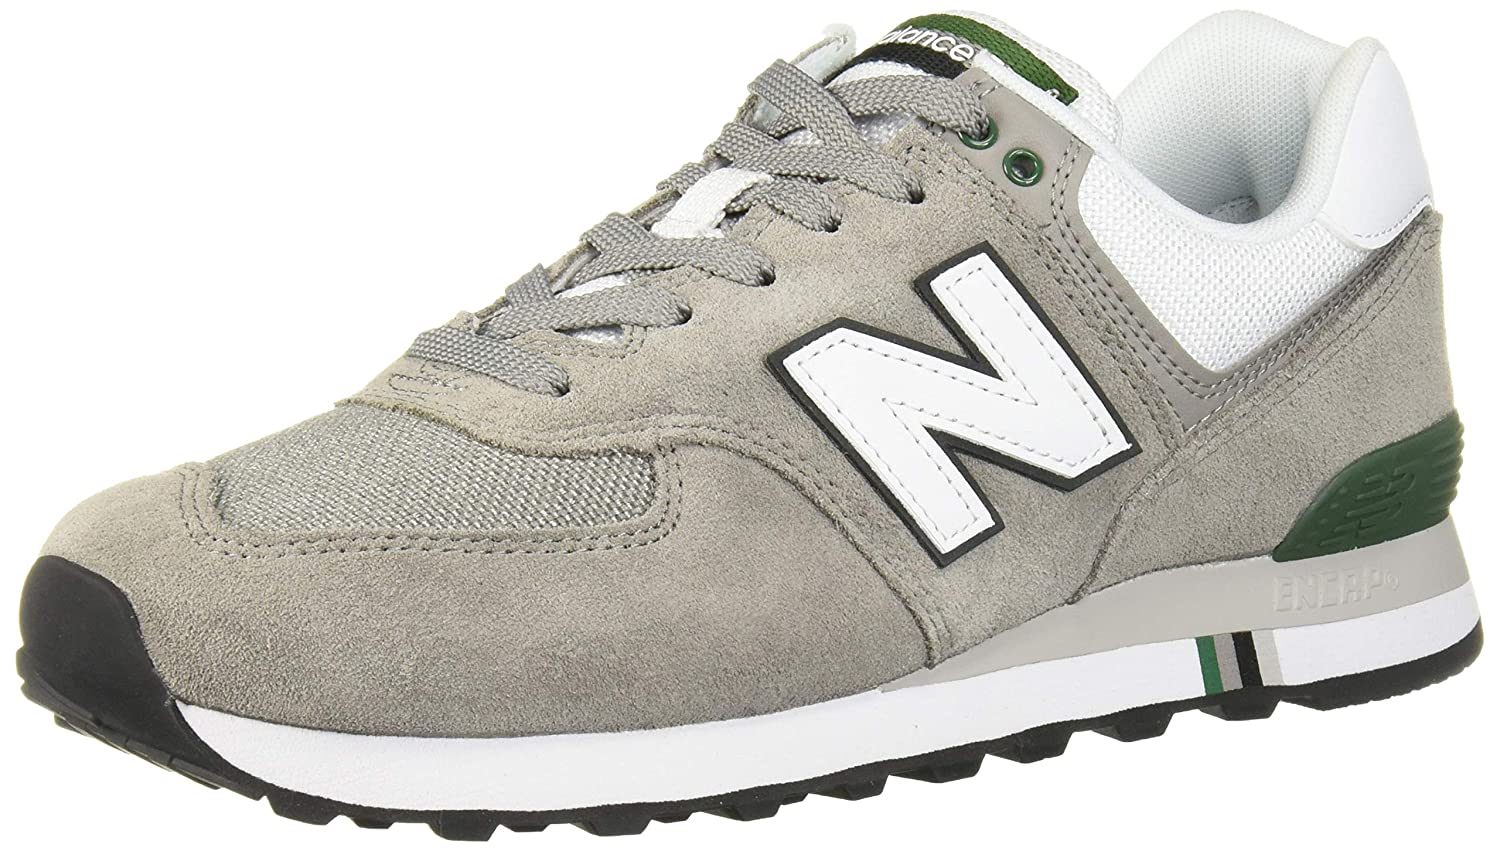 New Balance 574 Street Fashion with | Clothing